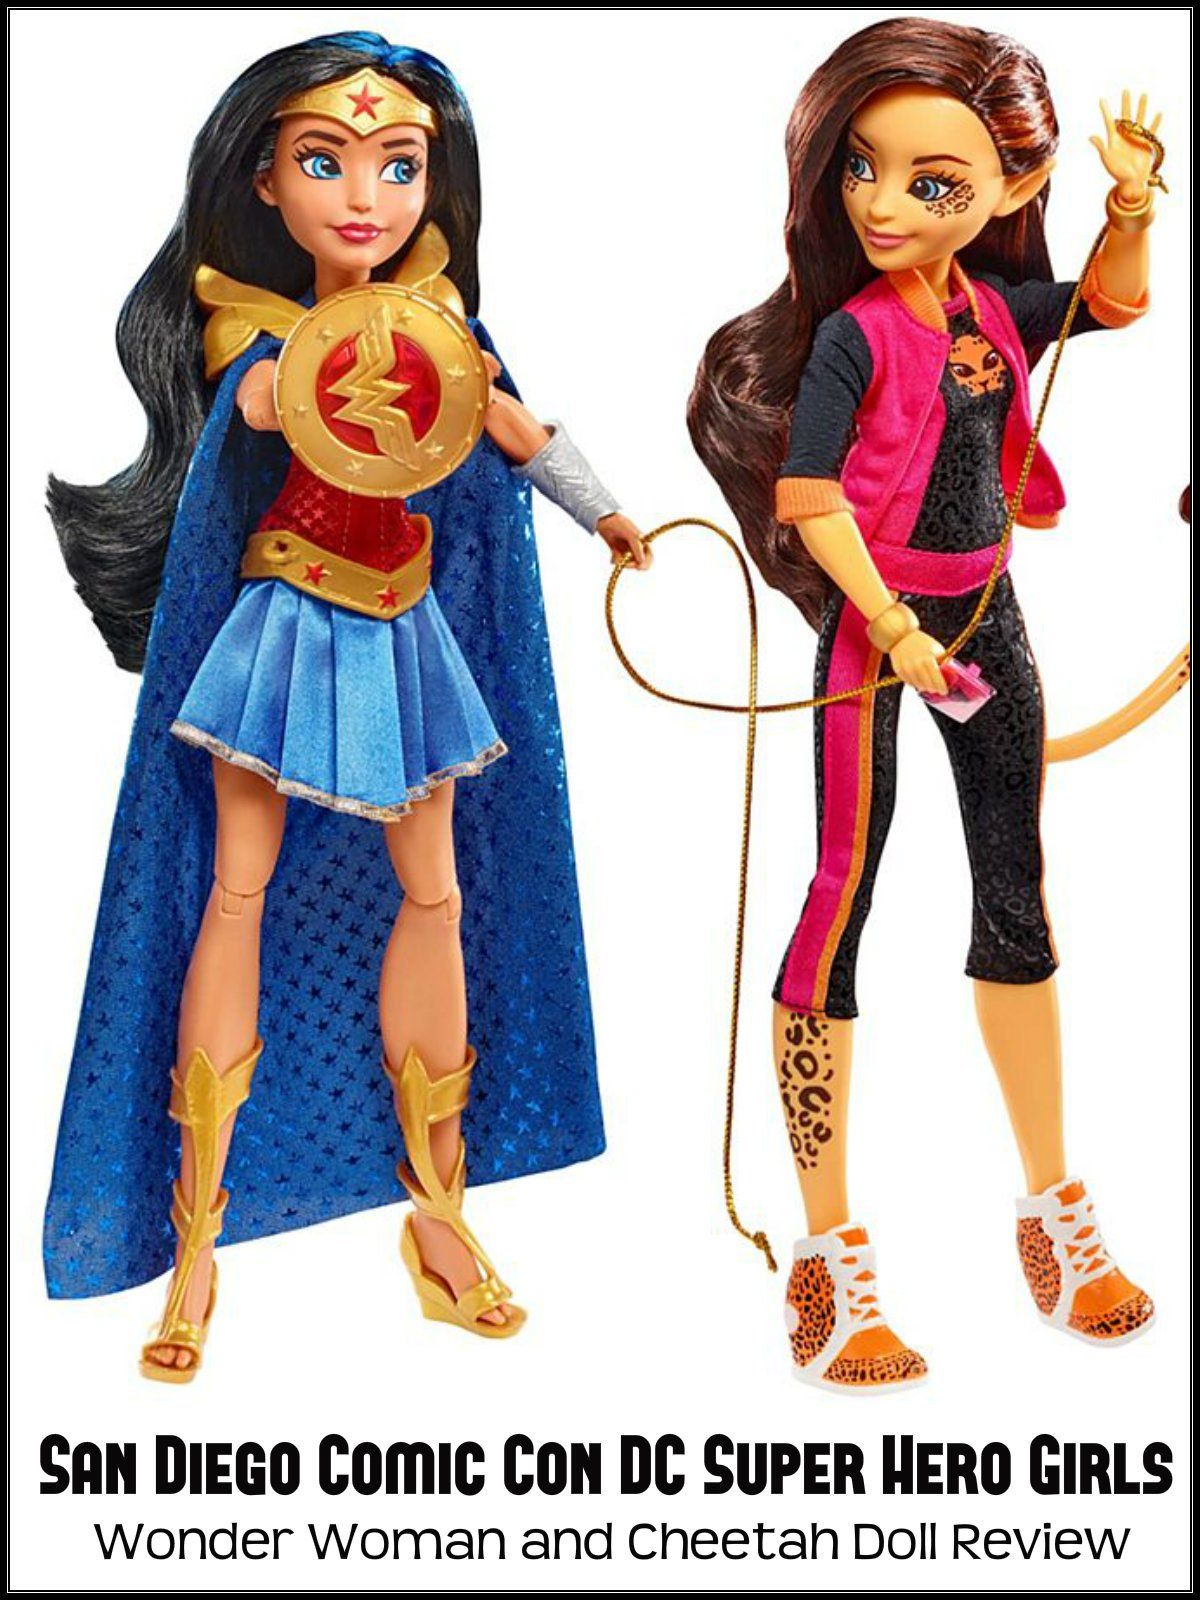 Review: San Diego Comic Con DC Super Hero Girls Wonder Woman and Cheetah Doll Review on Amazon Prime Video UK